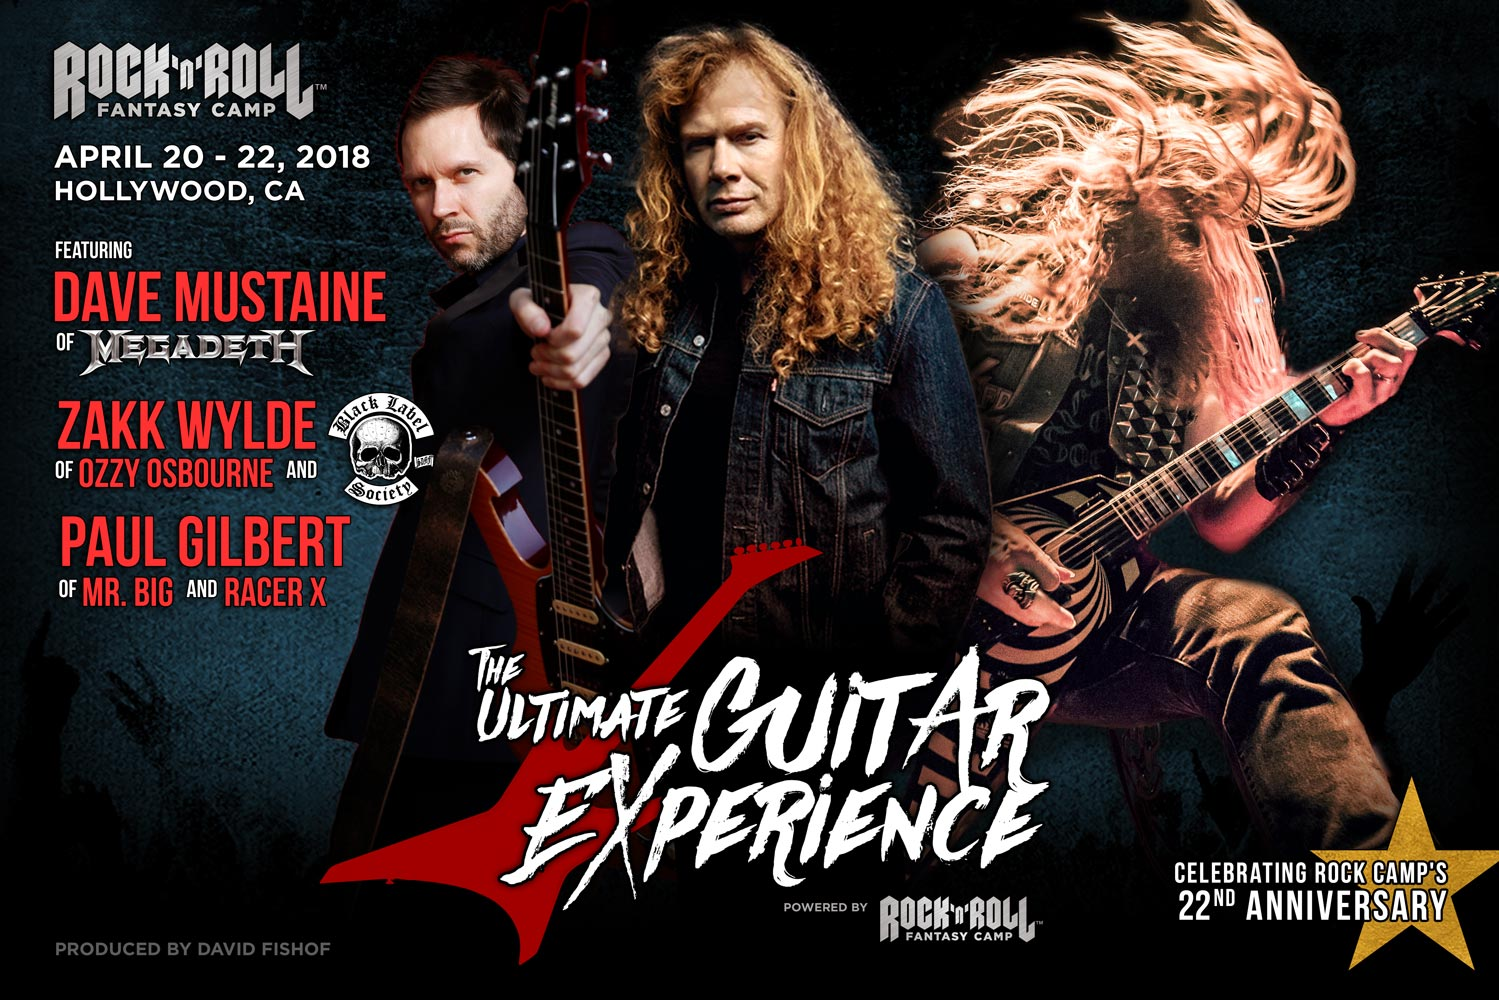 Flyer for the camp, with photos of your camp headliners: Dave Mustaine, Zakk Wylde, and Paul Gilbert.